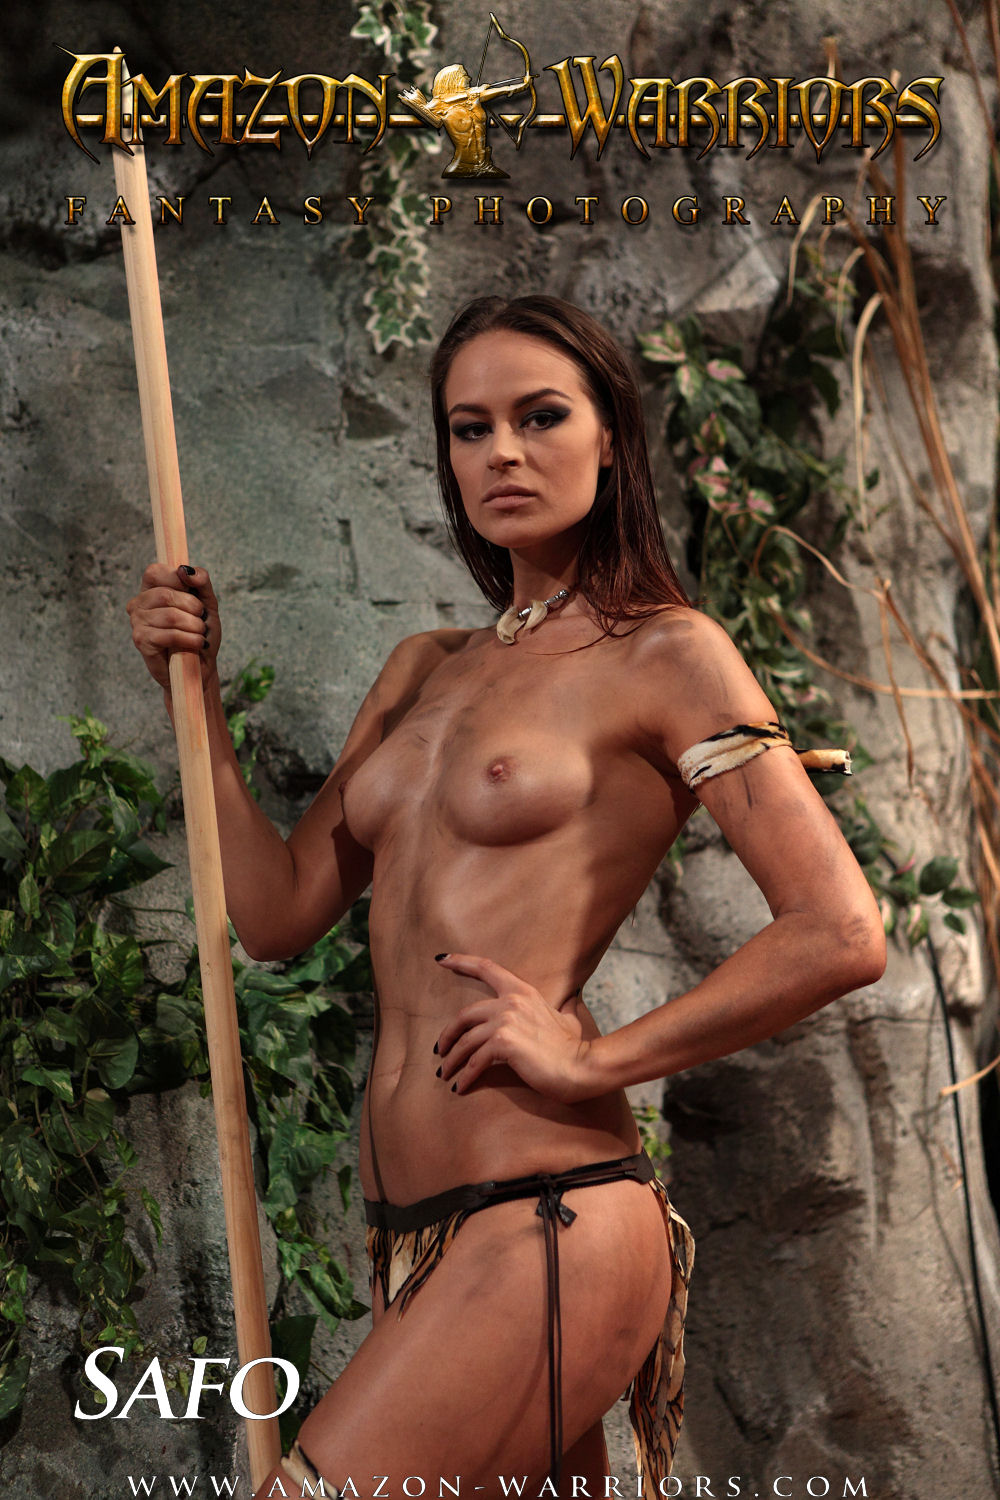 Images of naked amazonian women nsfw scene